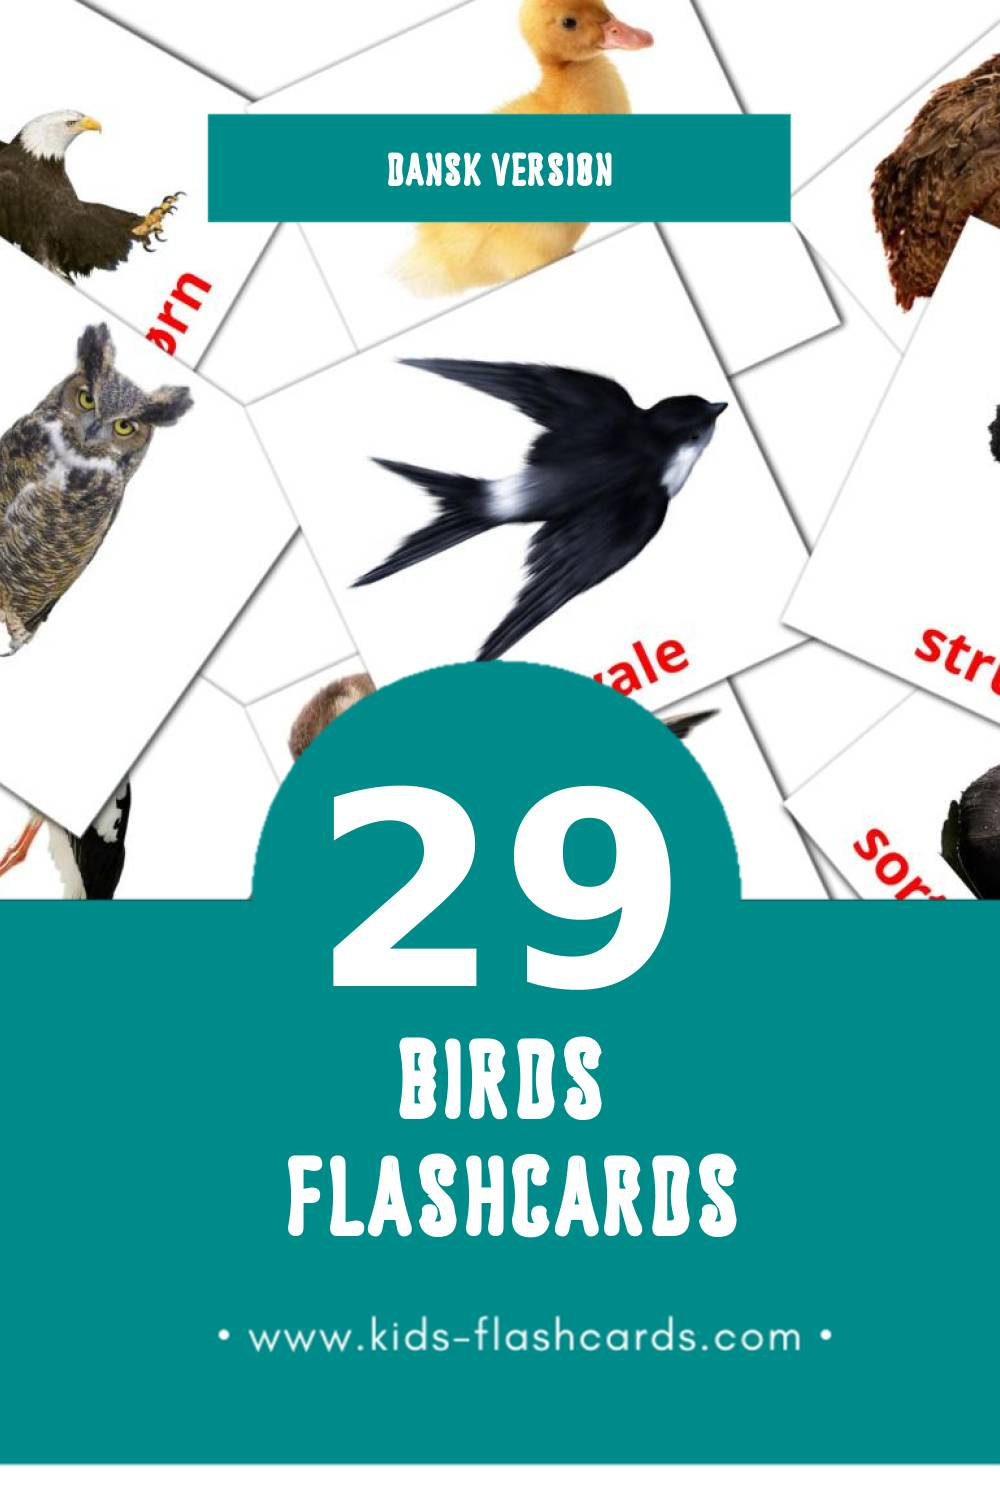 Visual Fugle Flashcards for Toddlers (28 cards in Dansk)